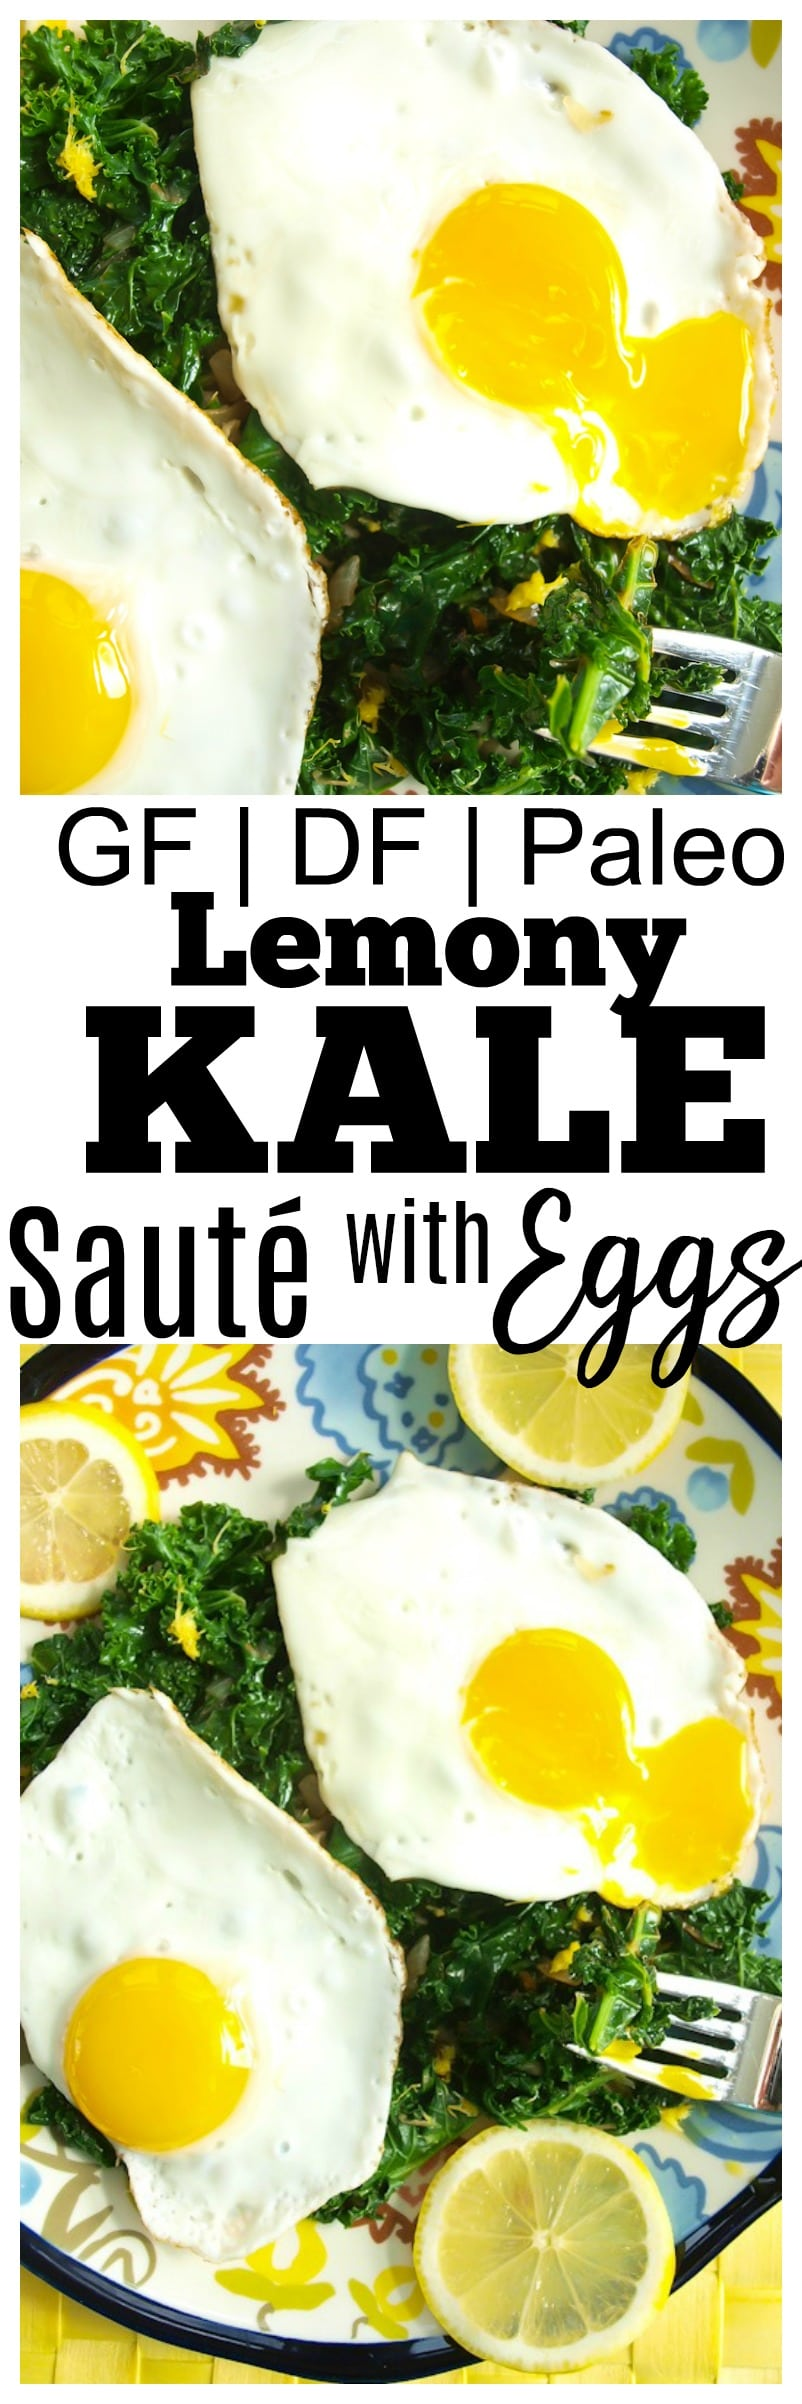 Lemony Kale Saute With Eggs Recipe Gluten-free, Dairy-free, and Paleo healthy breakfast lunch or dinner ideas